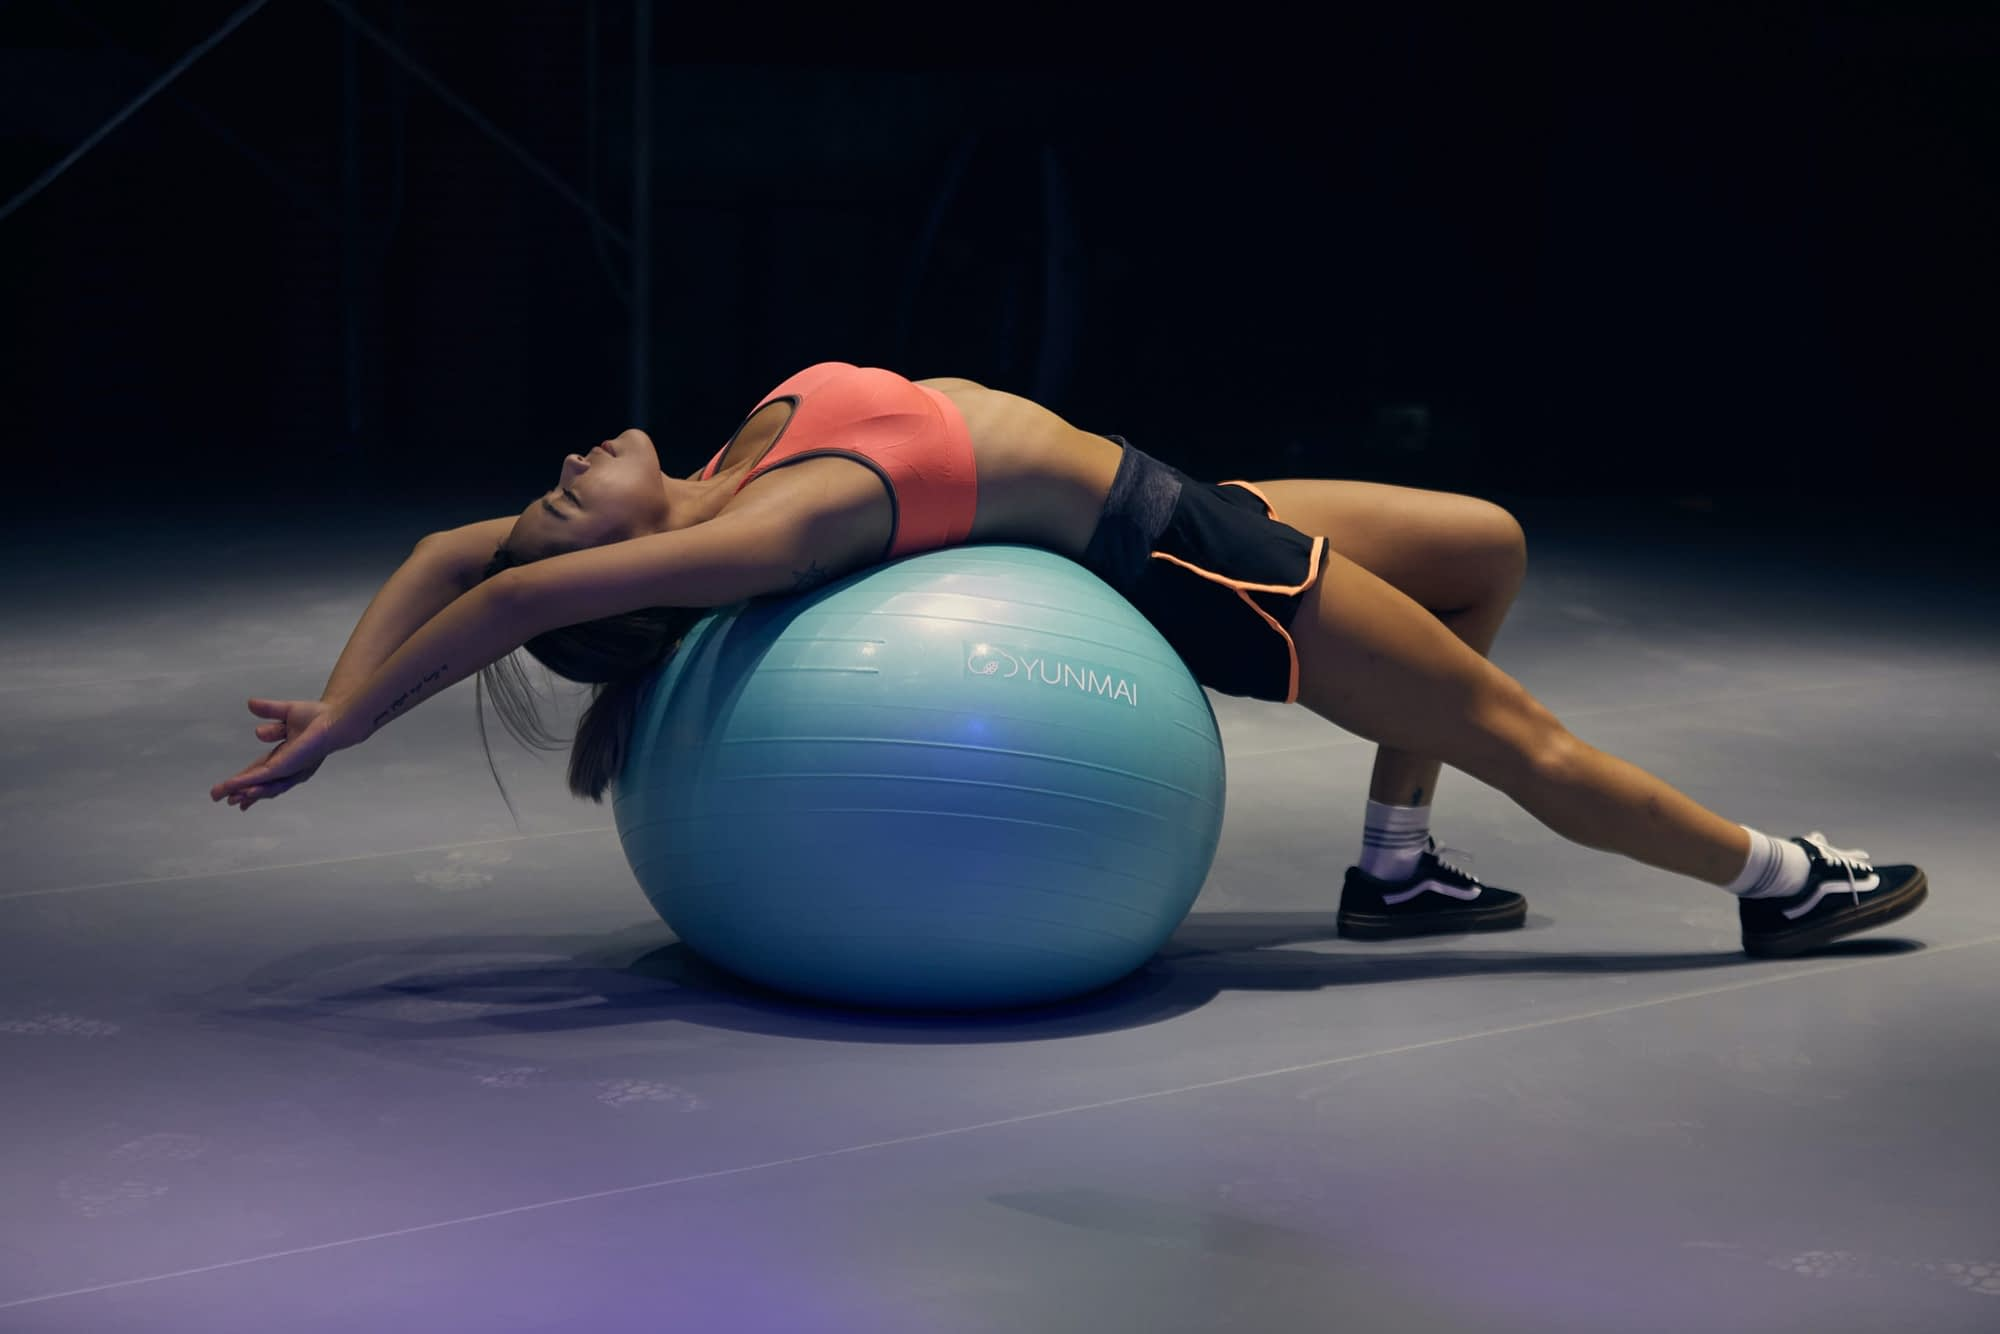 Apart from your usual back stretching routine, a back stretcher machine helps speed up the relief of your back pain